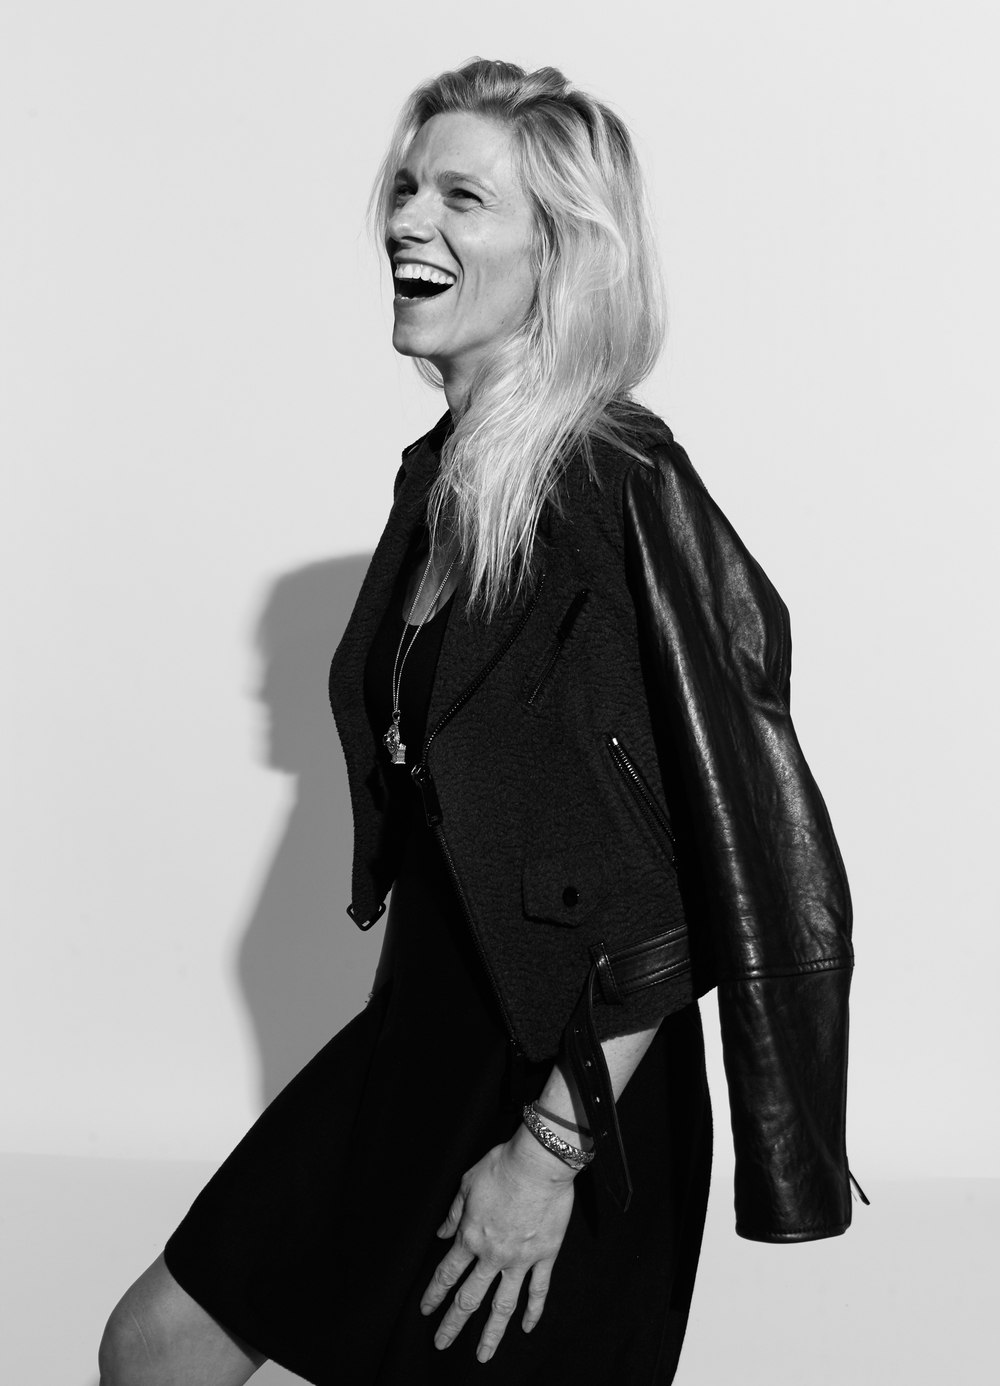 lindsay shookus photographed by Kate Owen black and white portrait #powertrip